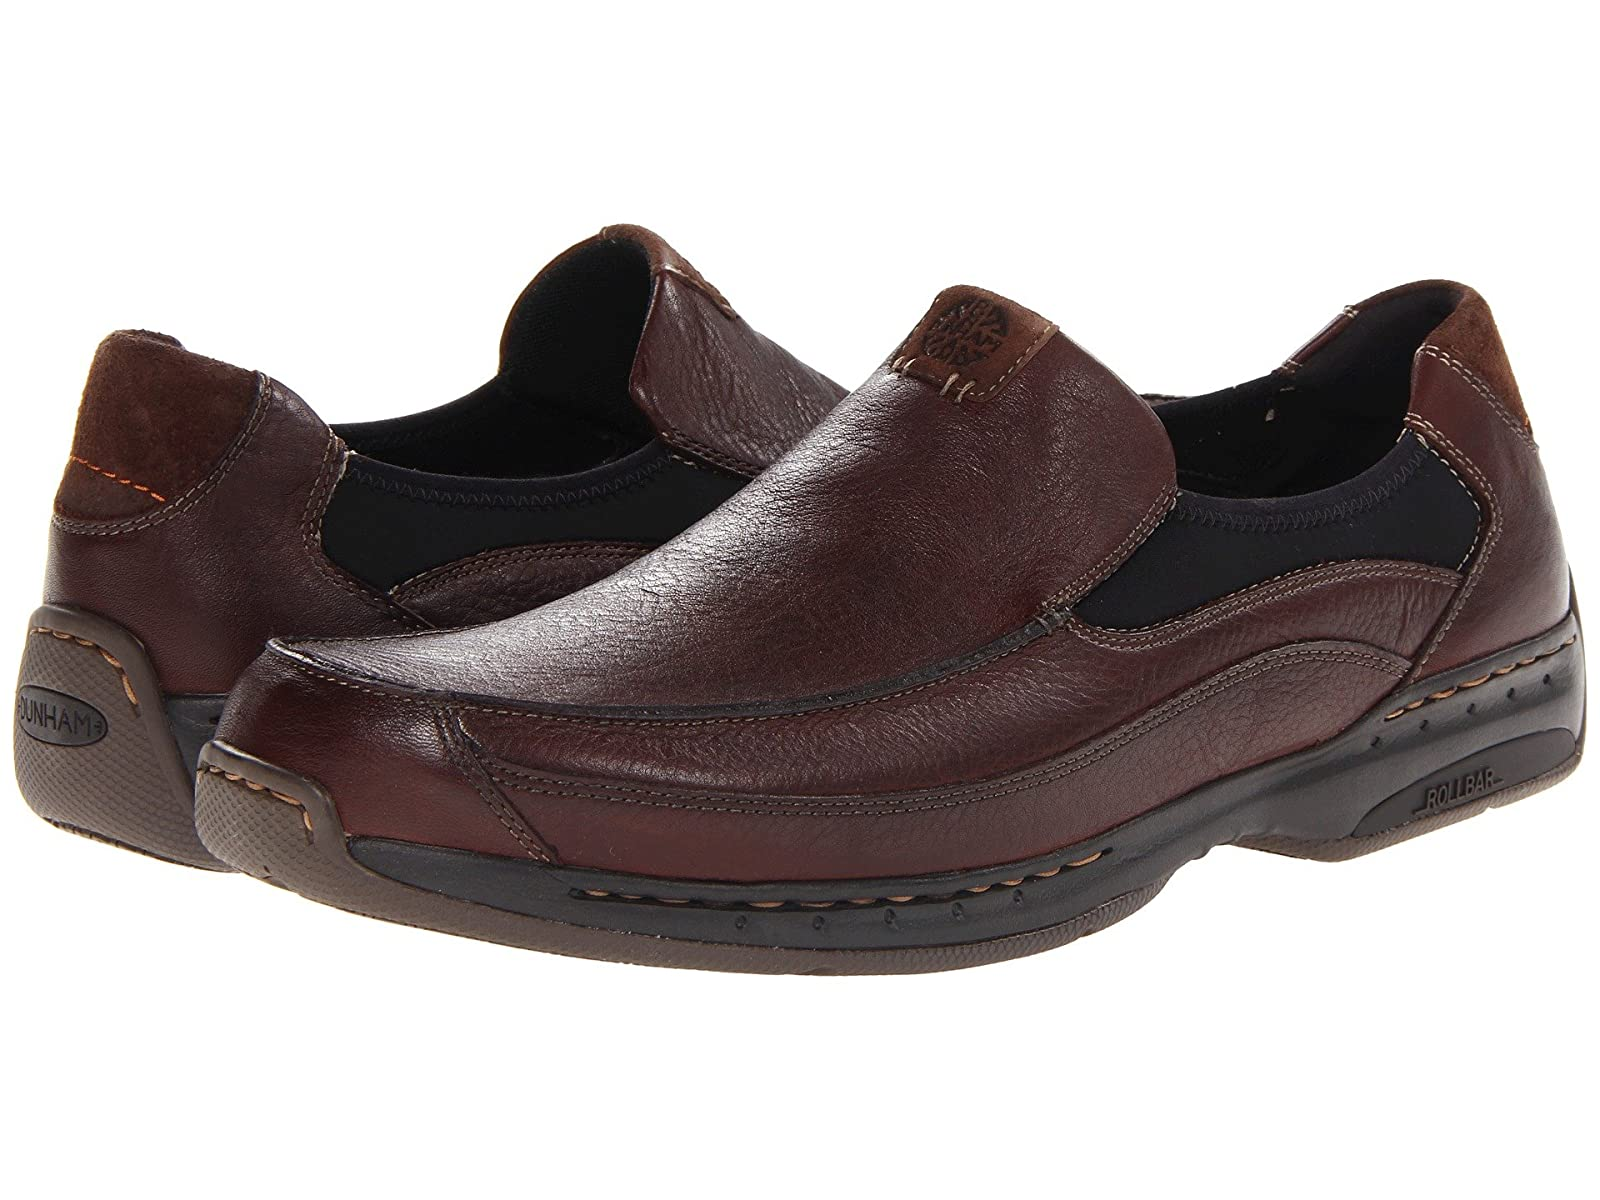 Dunham Wade Slip OnAtmospheric grades have affordable shoes